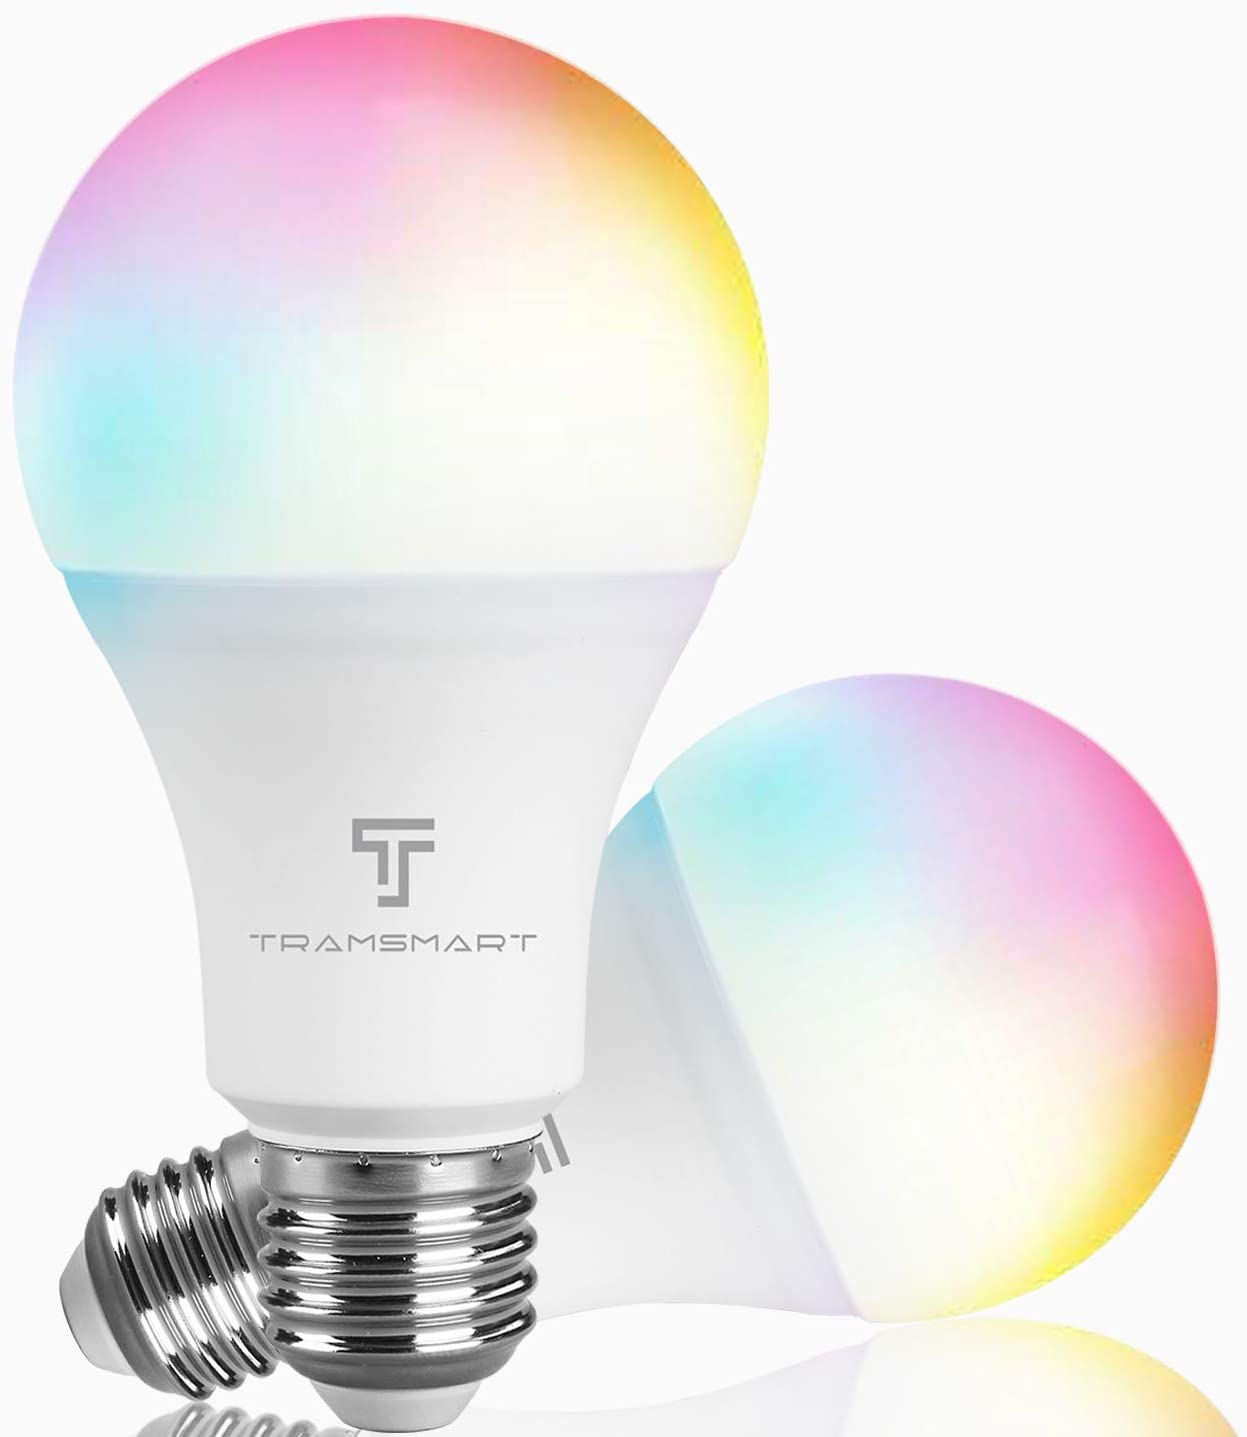 WiFi Smart Light Bulbs Compatible with Alexa and Google, RGB & CCT 2700-6500K Color Changing, Tramsmart E26 A19 LED Smart Light Bulb No Hub Required, 9W(60w Equivalent) 800 Lumens, 2 Pack